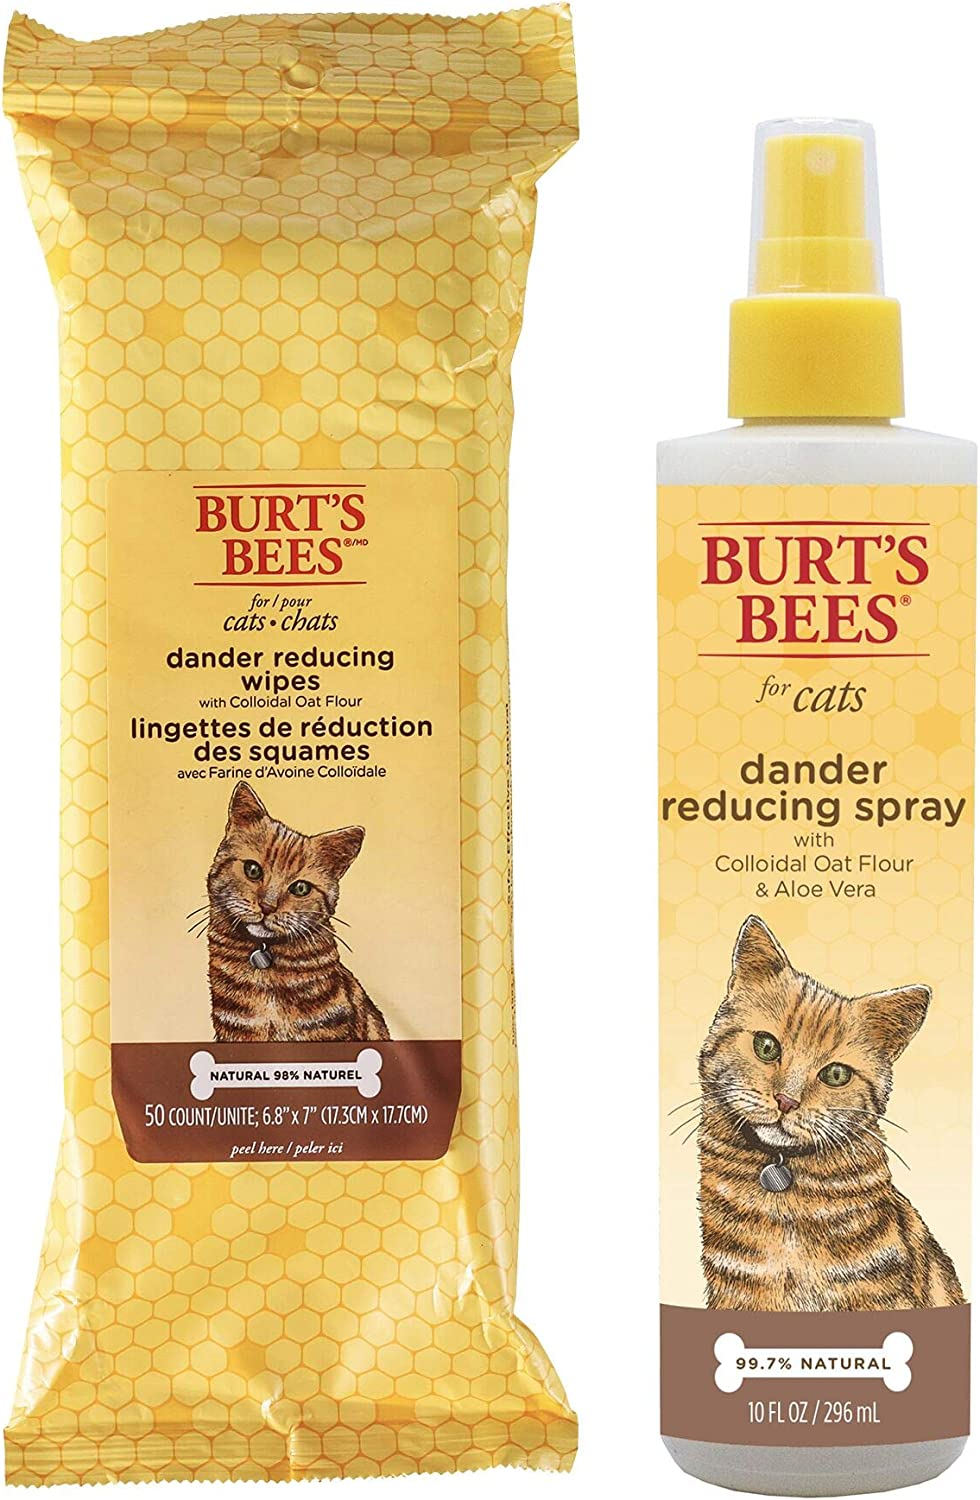 Combo Pack: Burt's Bees for Cats Grooming Wipes and Dander Reducing Spray with Colloidal Oat Flour & Aloe Vera | Cruelty Free, Sulfate & Paraben Free, pH Balanced for Cats - Made in The USA